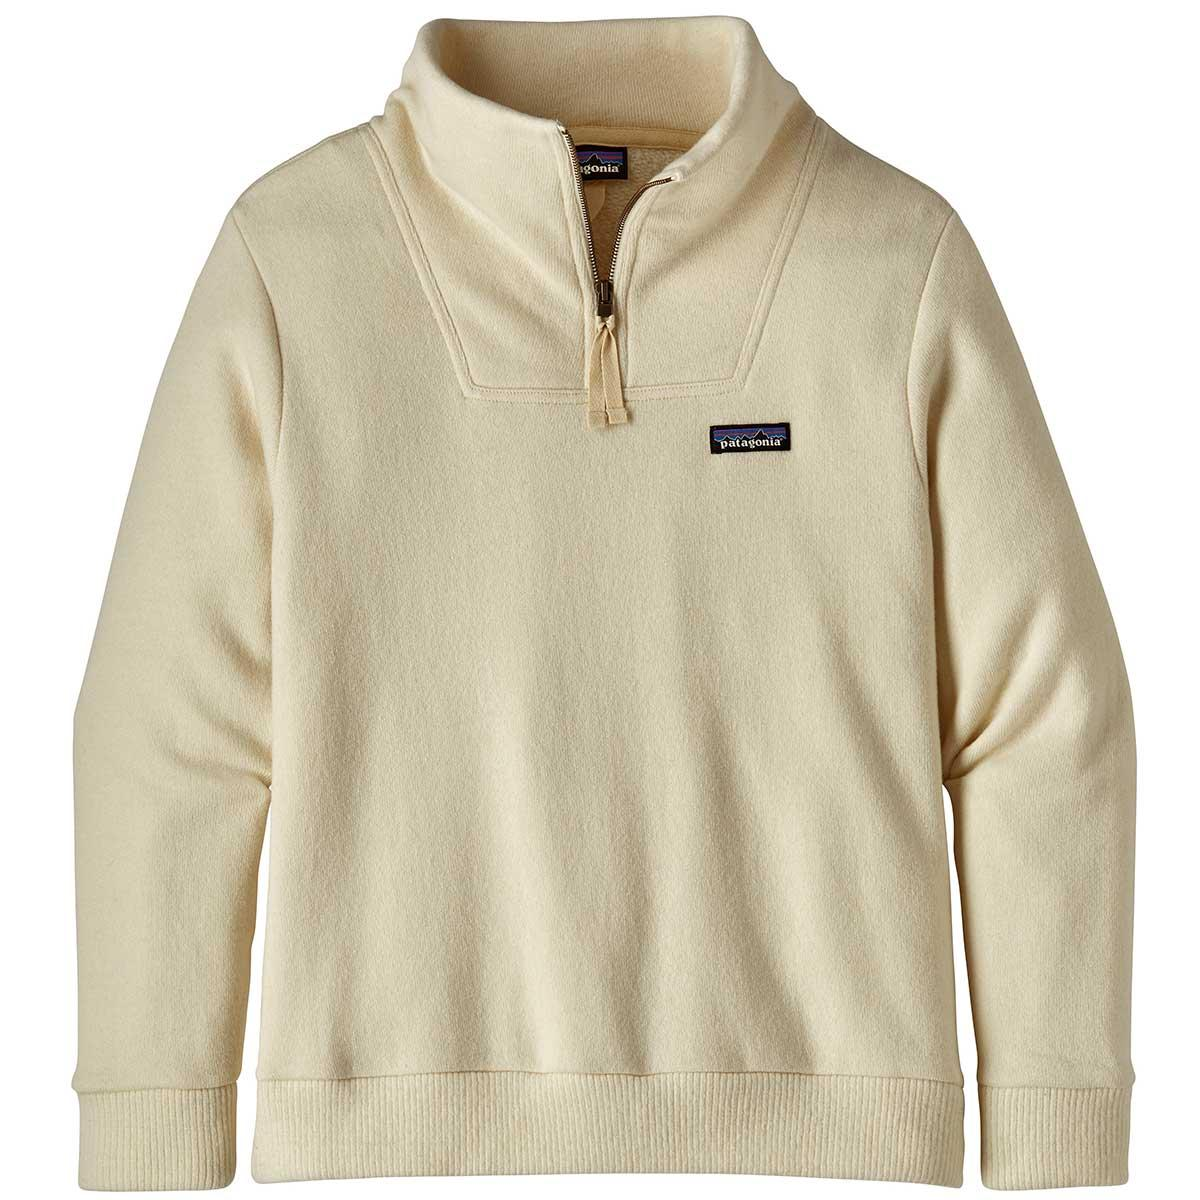 Patagonia women's Woolie Fleece Pullover in Oyster White front view